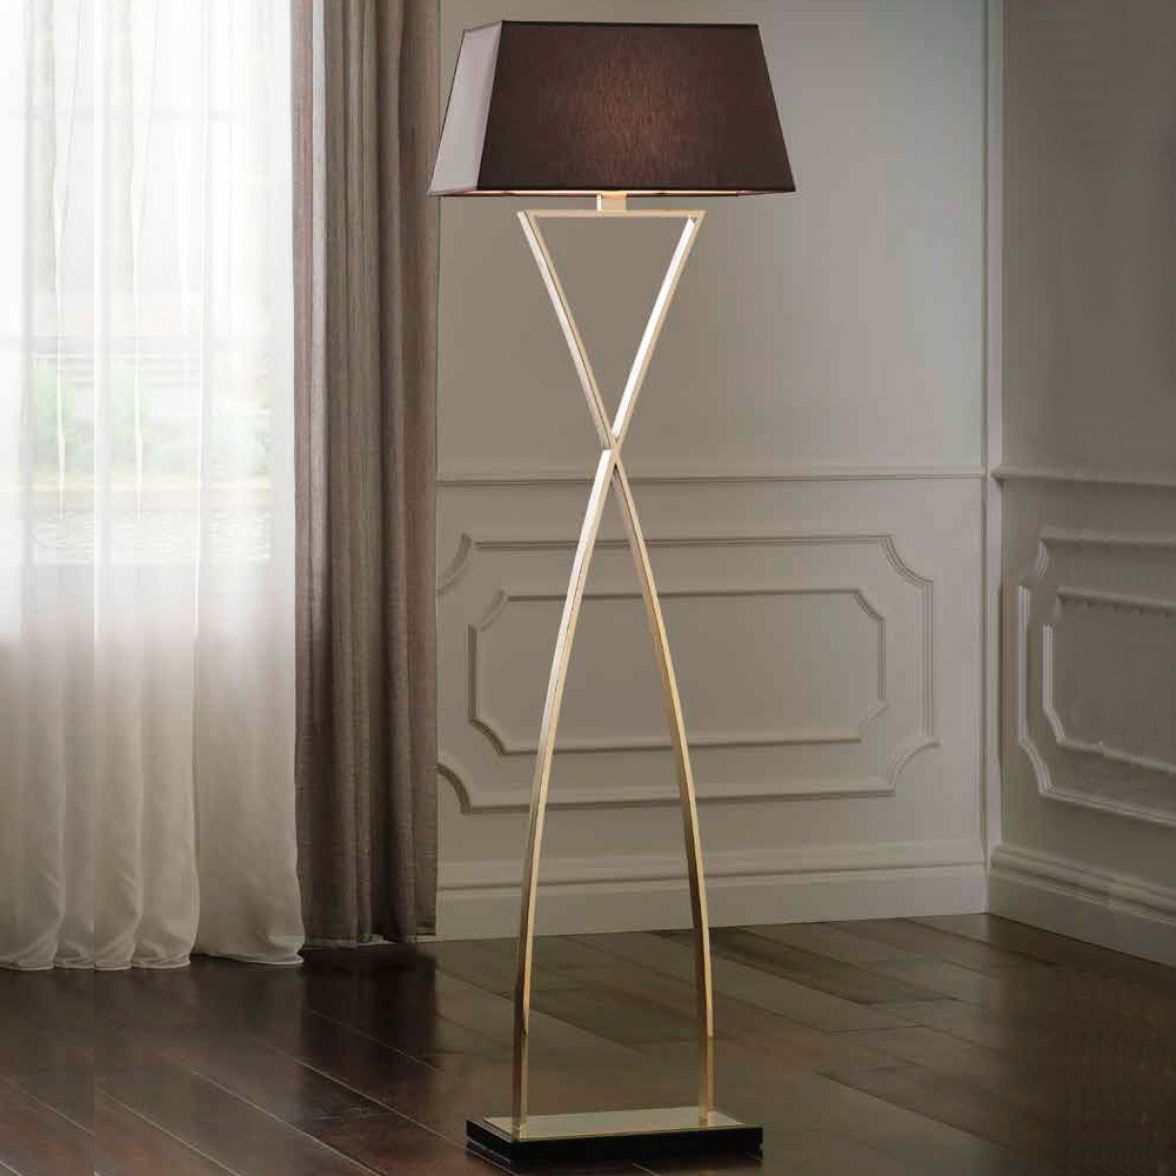 Chloe floor lamp фото цена